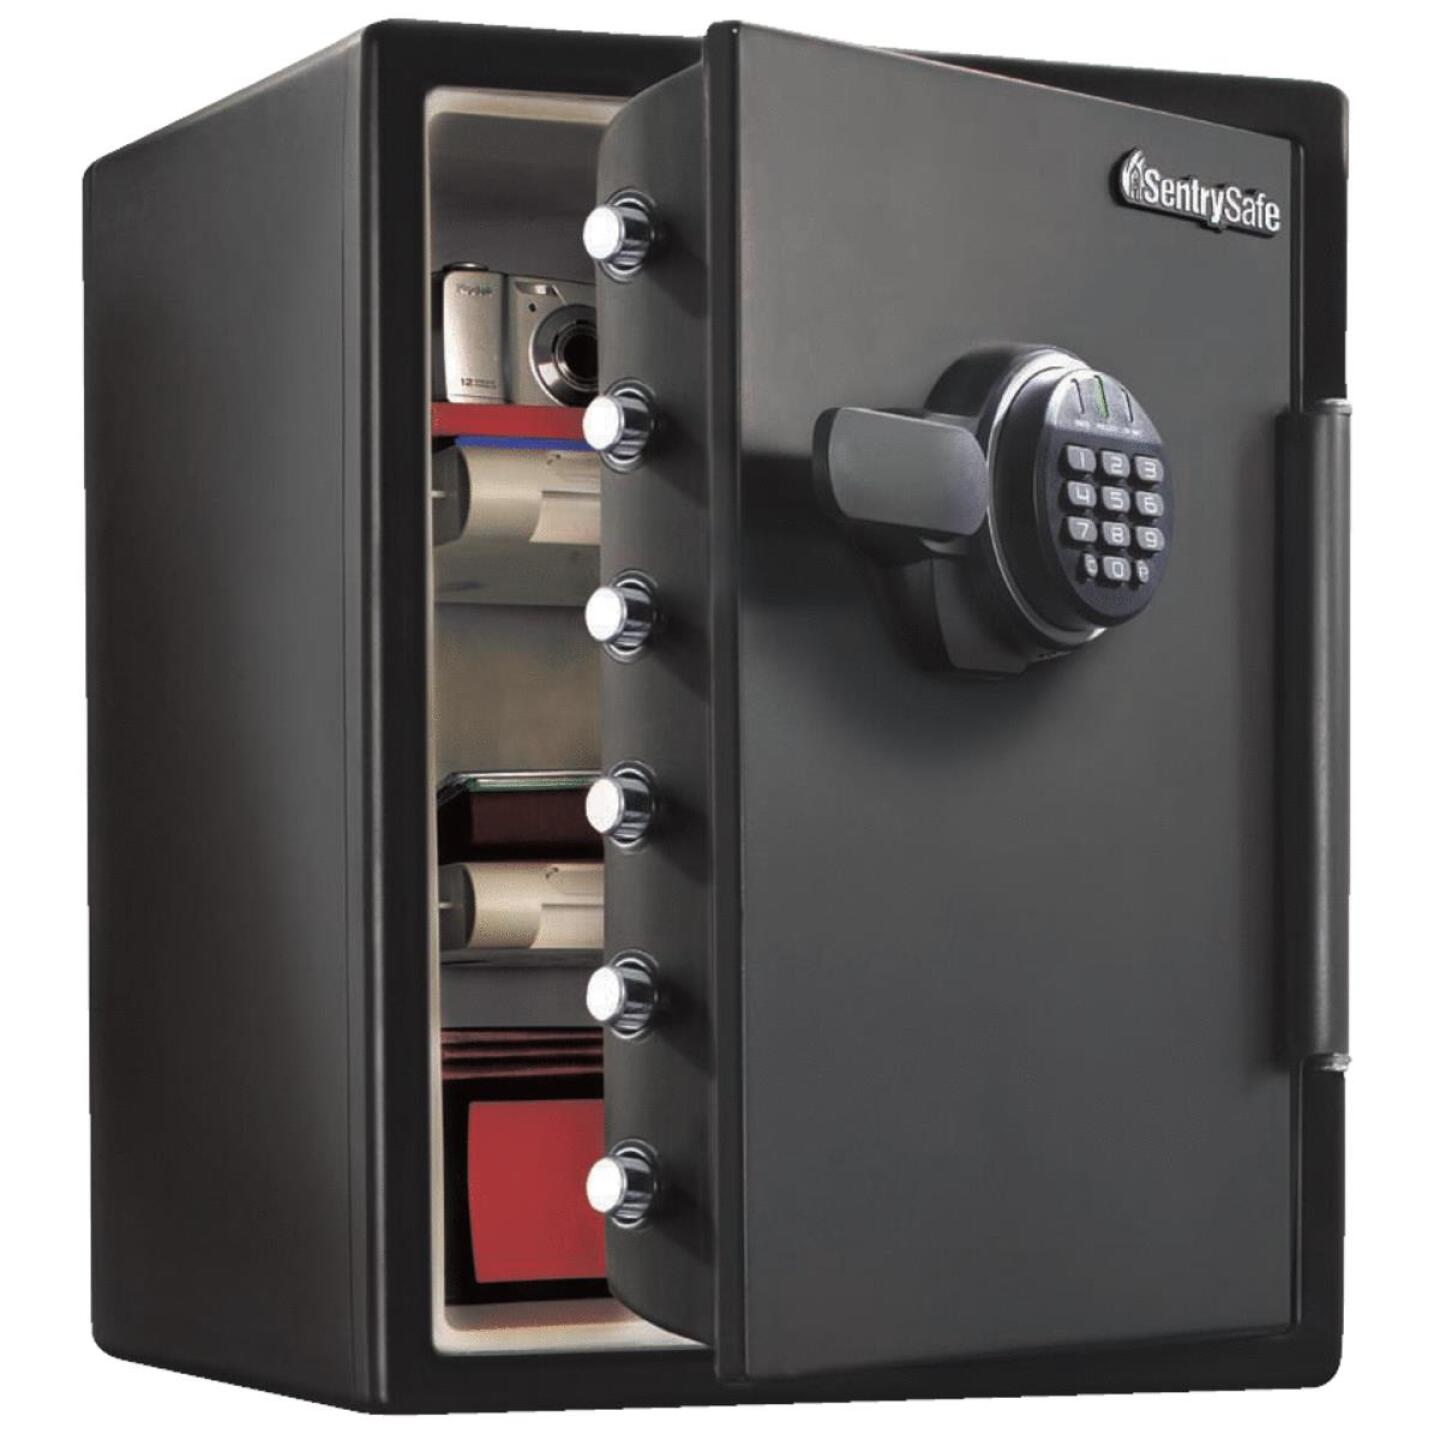 Sentry Safe 2 Cu. Ft. Capacity Digital Fire-Safe Floor Safe Image 1